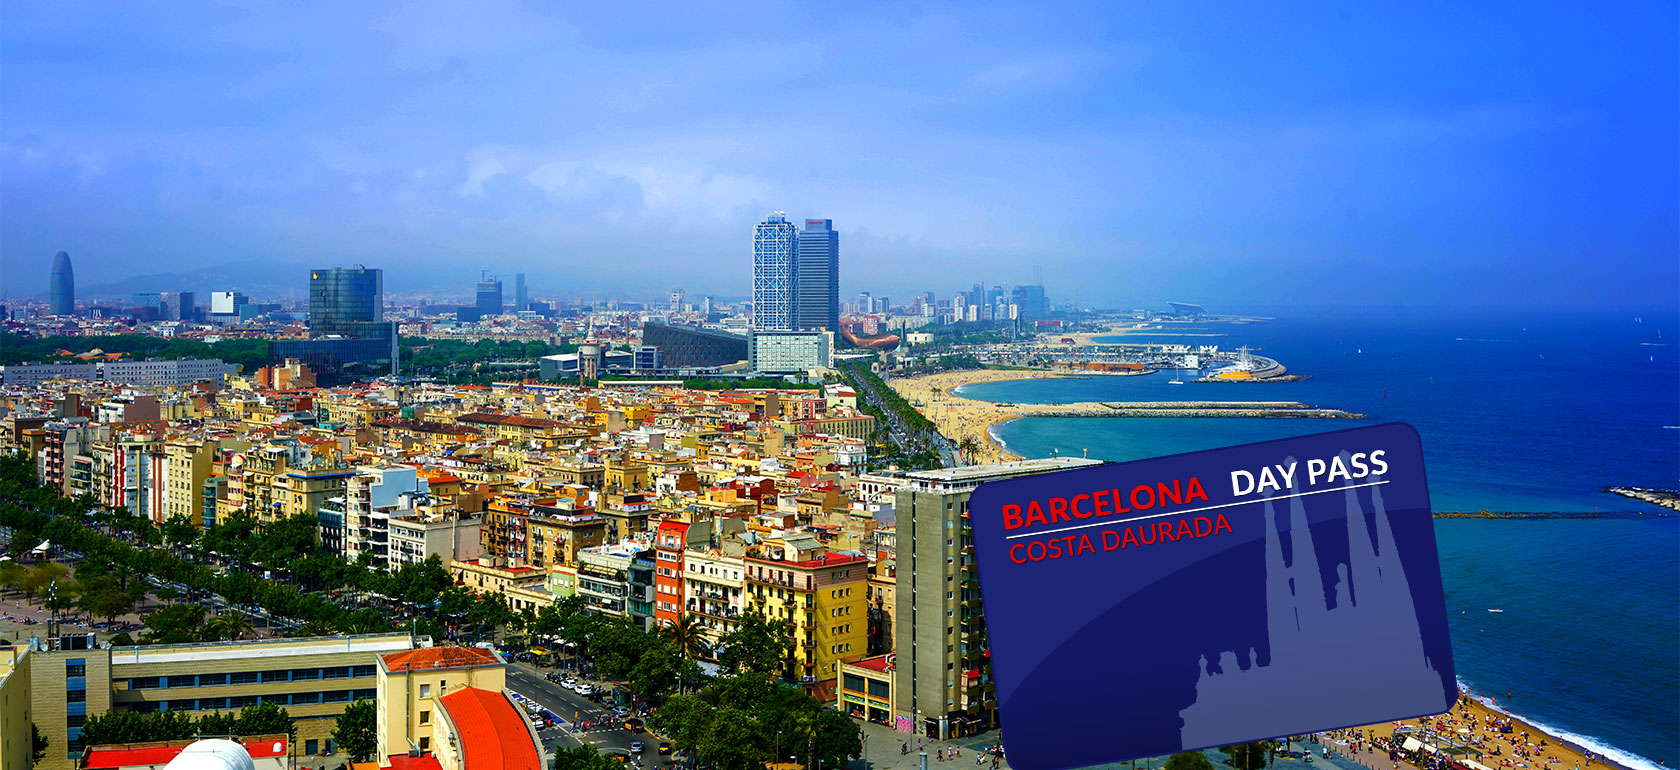 Costa Dorada – Barcelona Day Pass